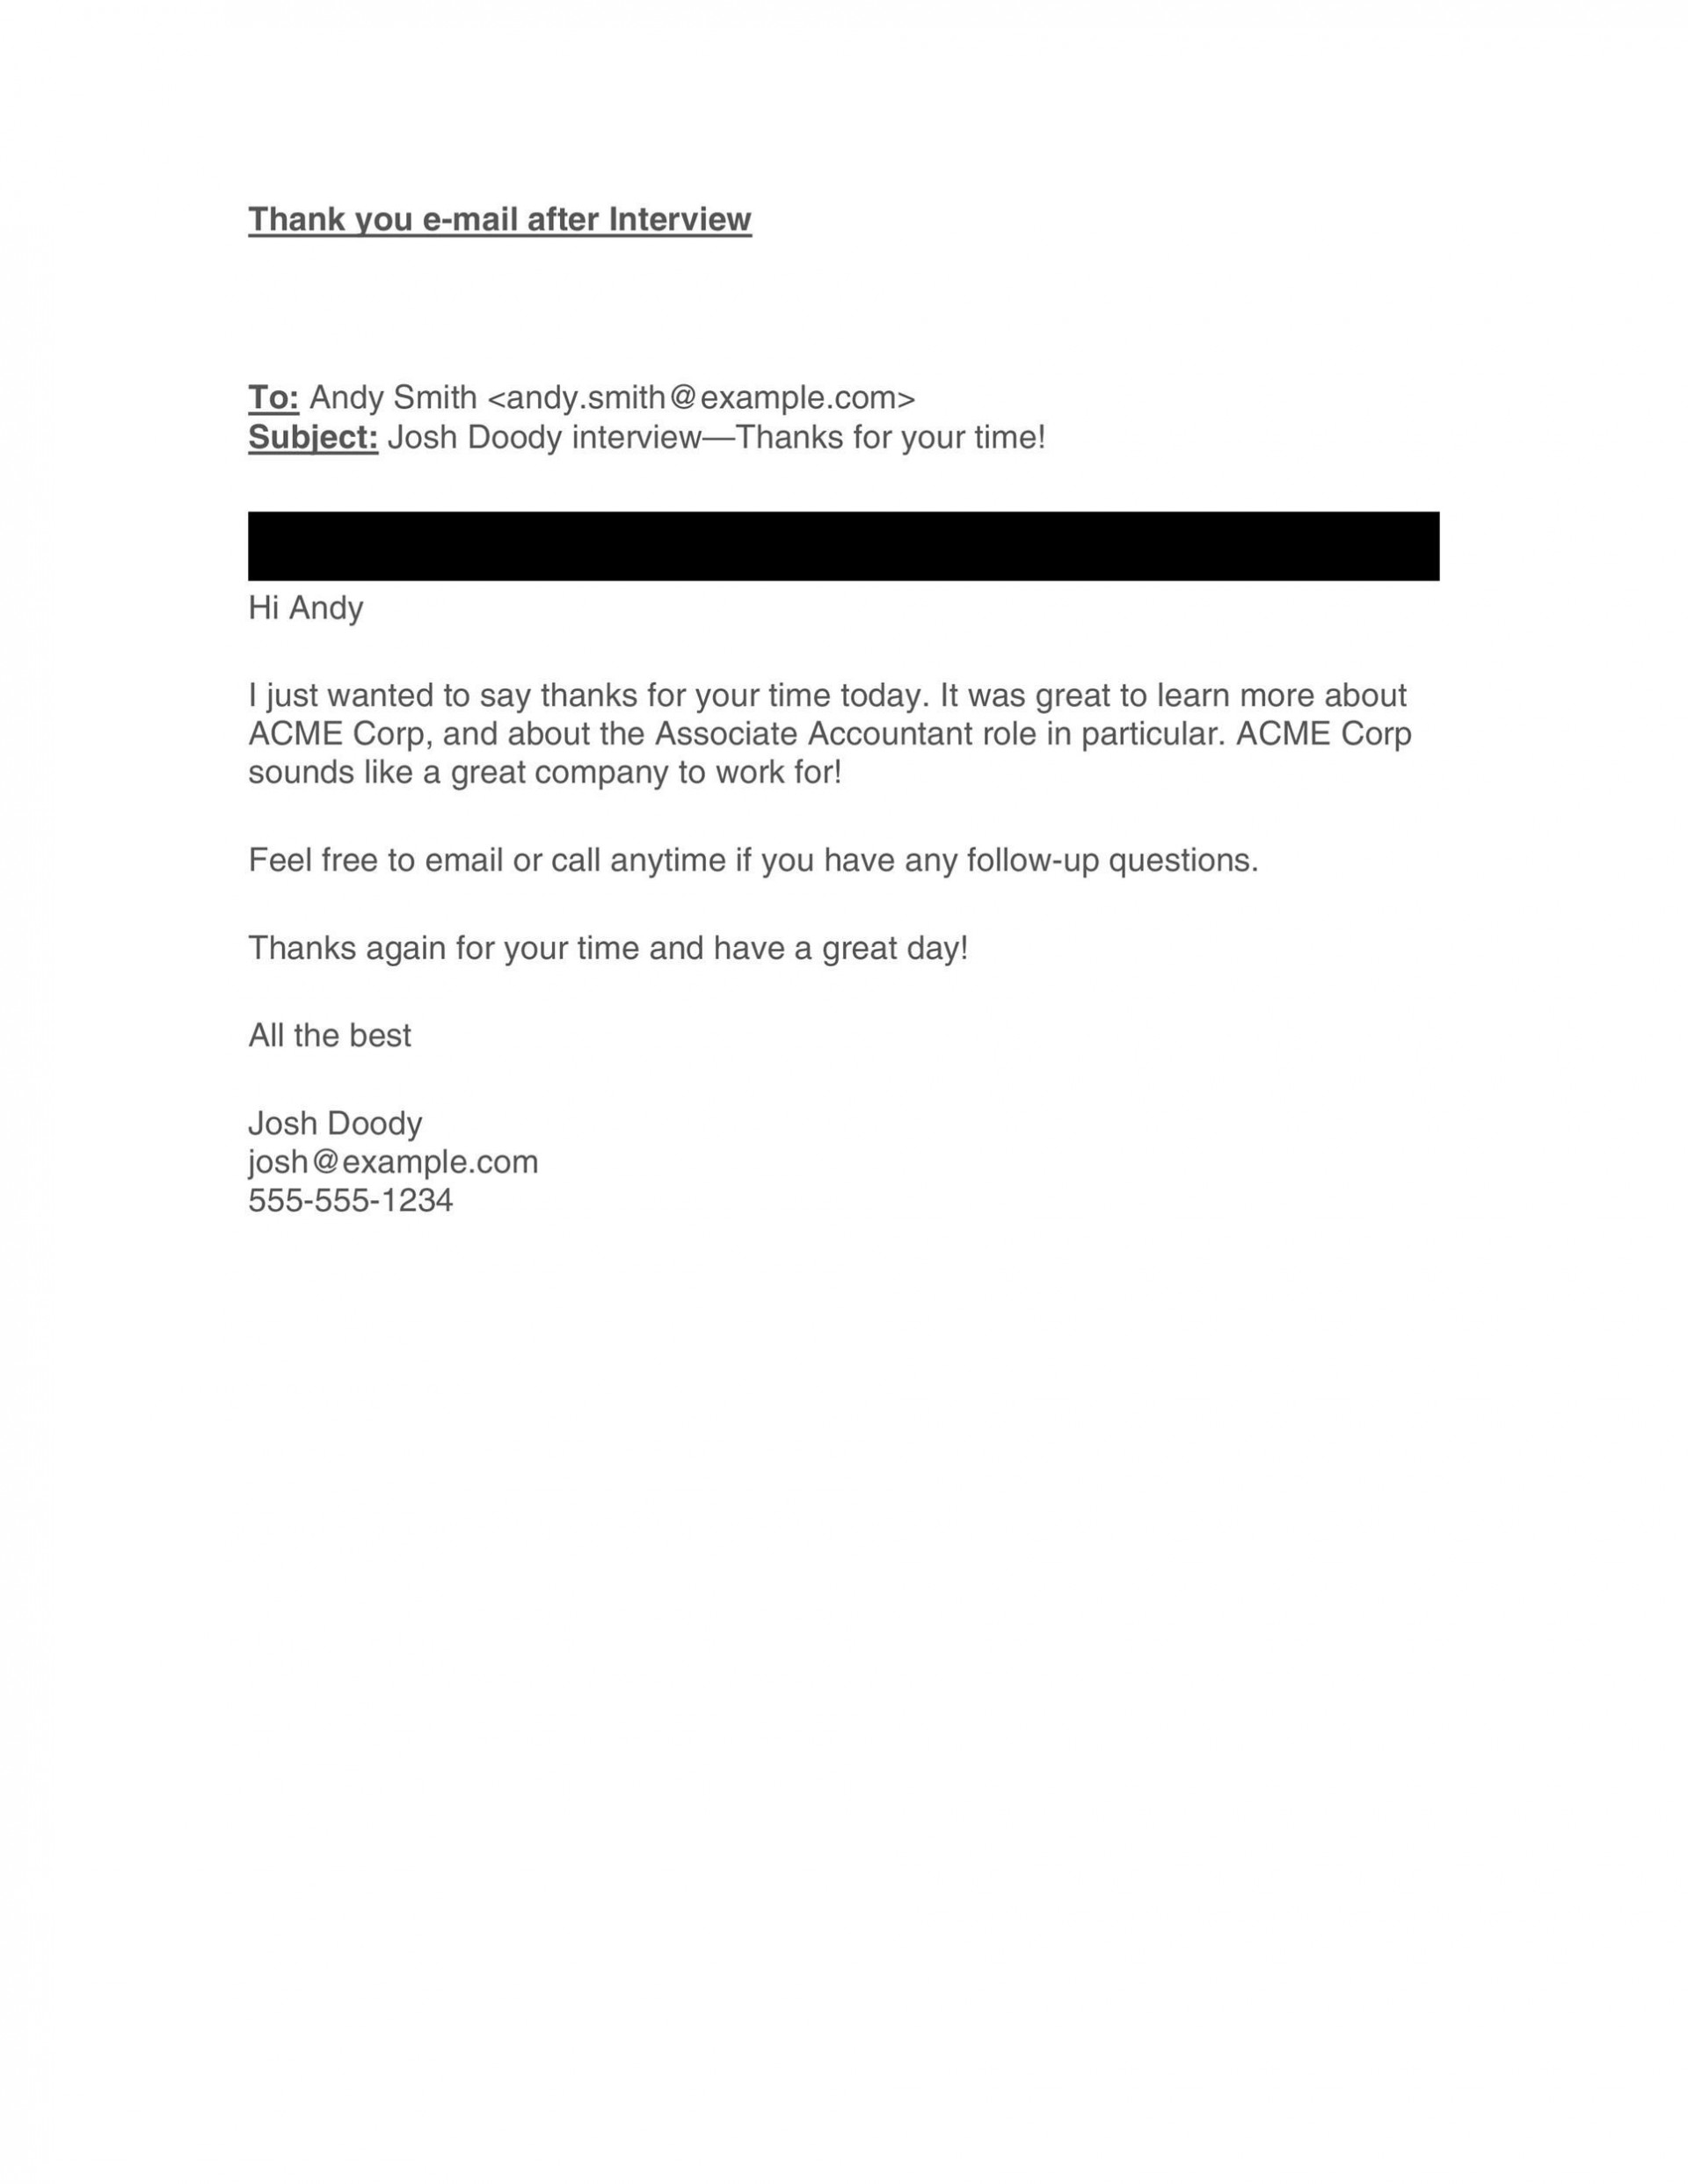 008 Rare Follow Up Email Sample After Interview Image  Polite When You Haven't Heard Back1920